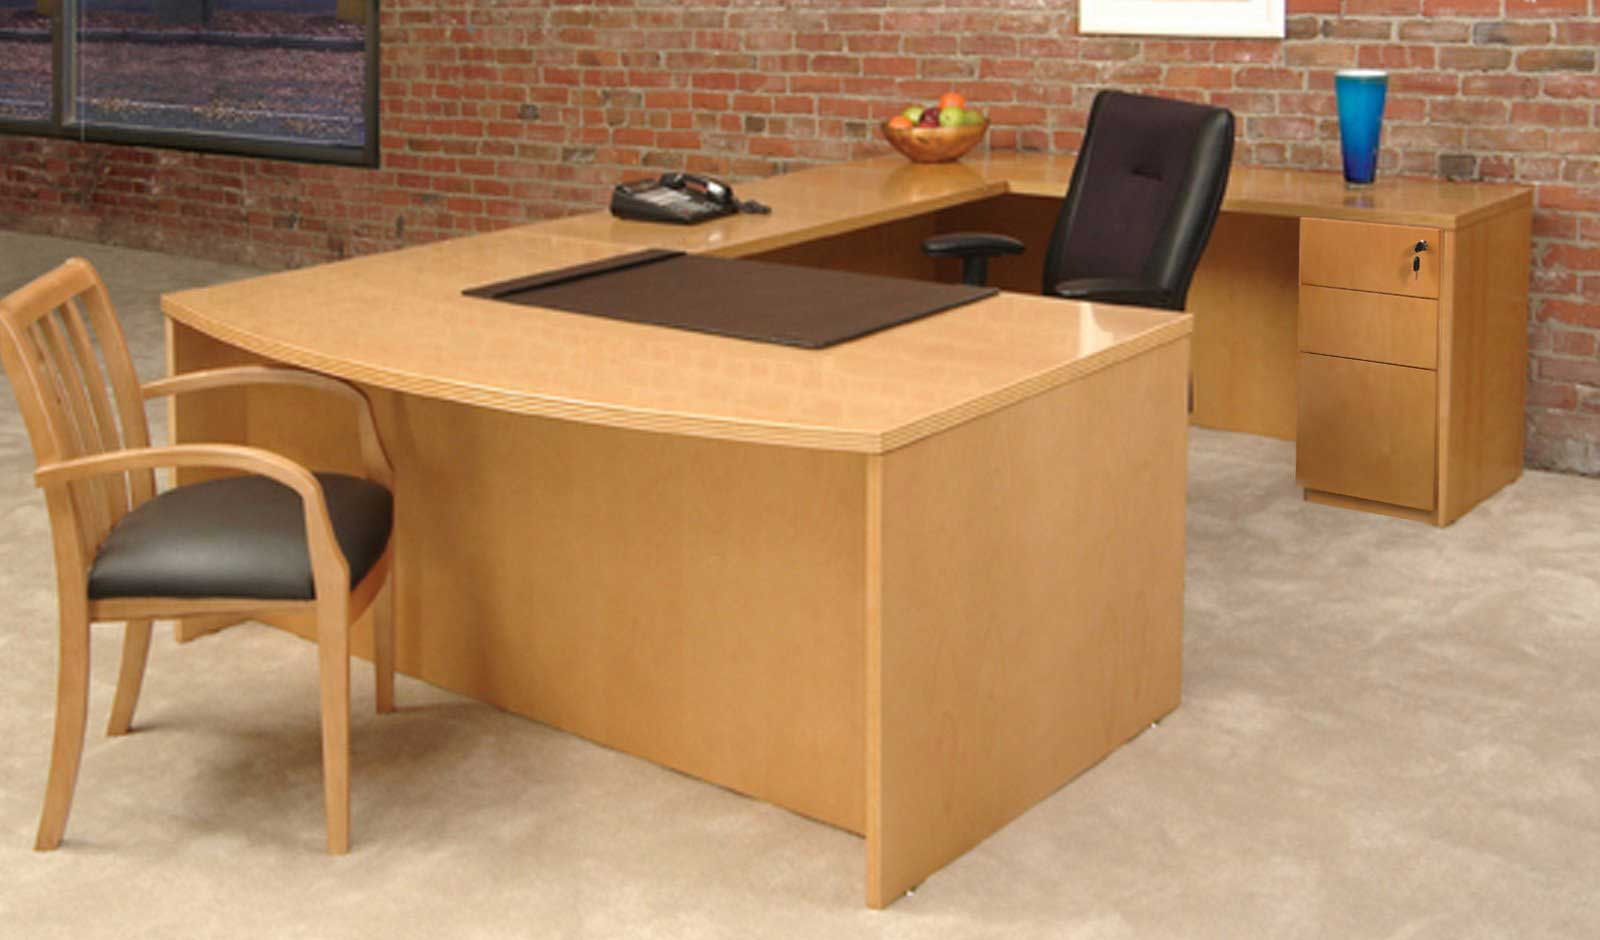 Luminary discount wooden furniture for home office